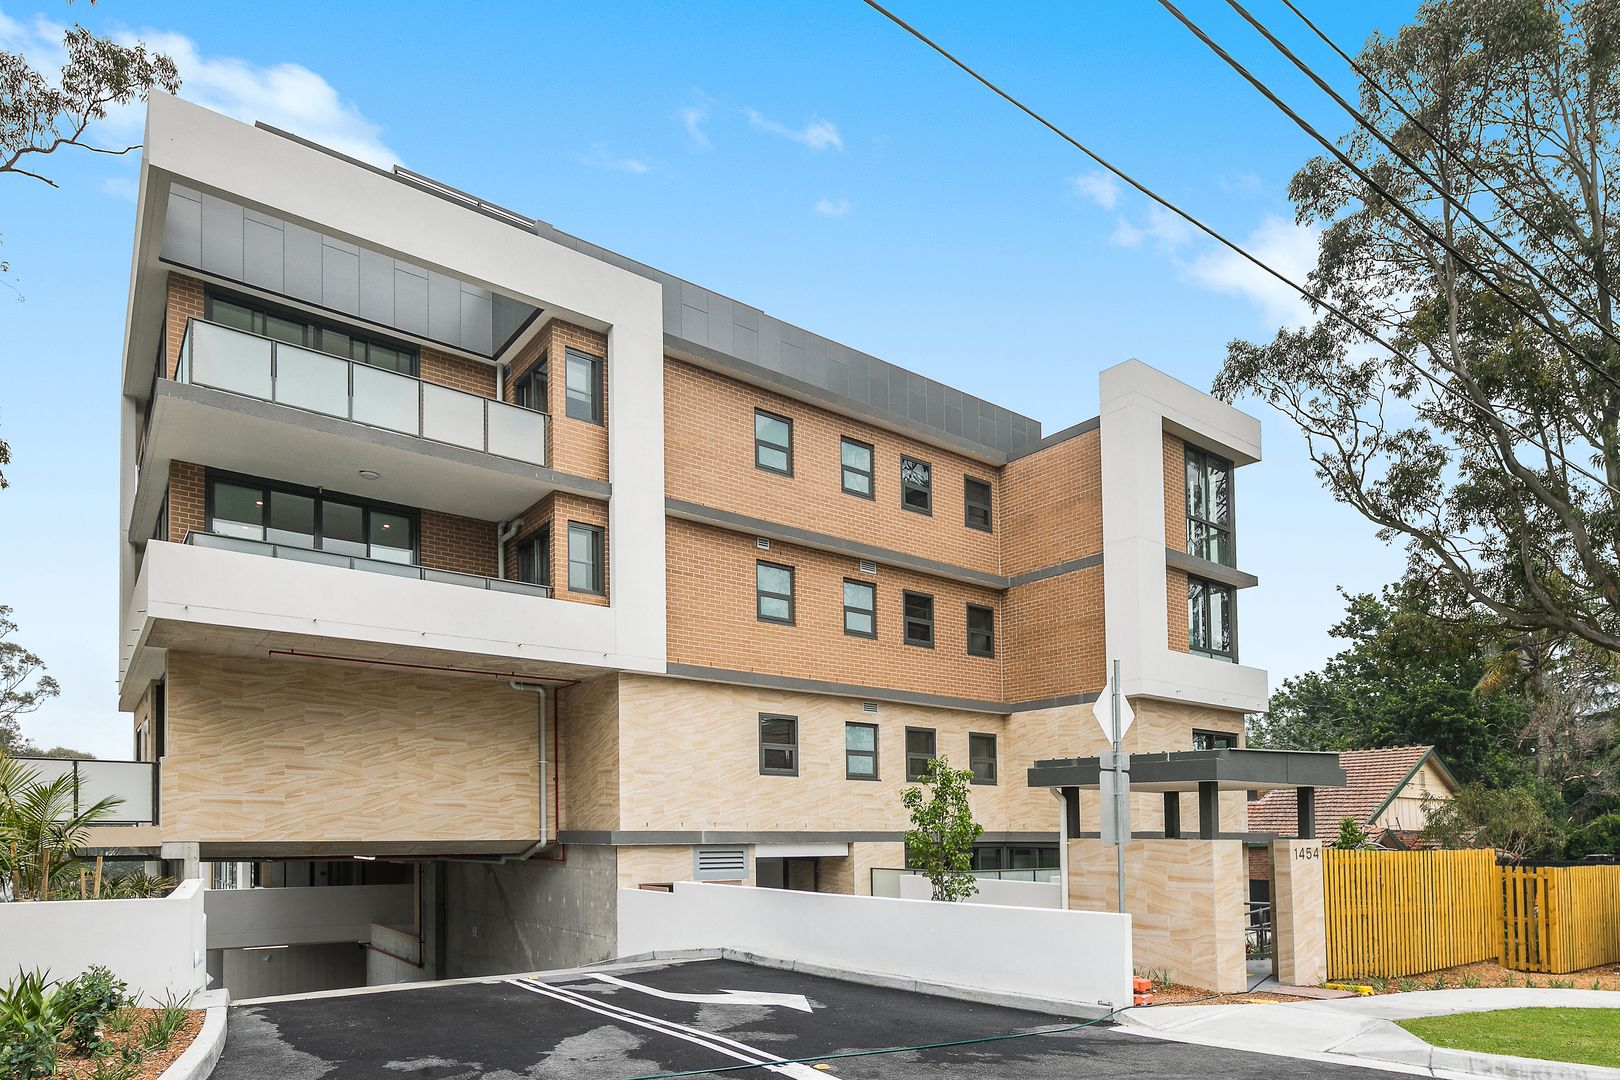 2 Bed/1454 Pacific Highway, Turramurra NSW 2074, Image 0